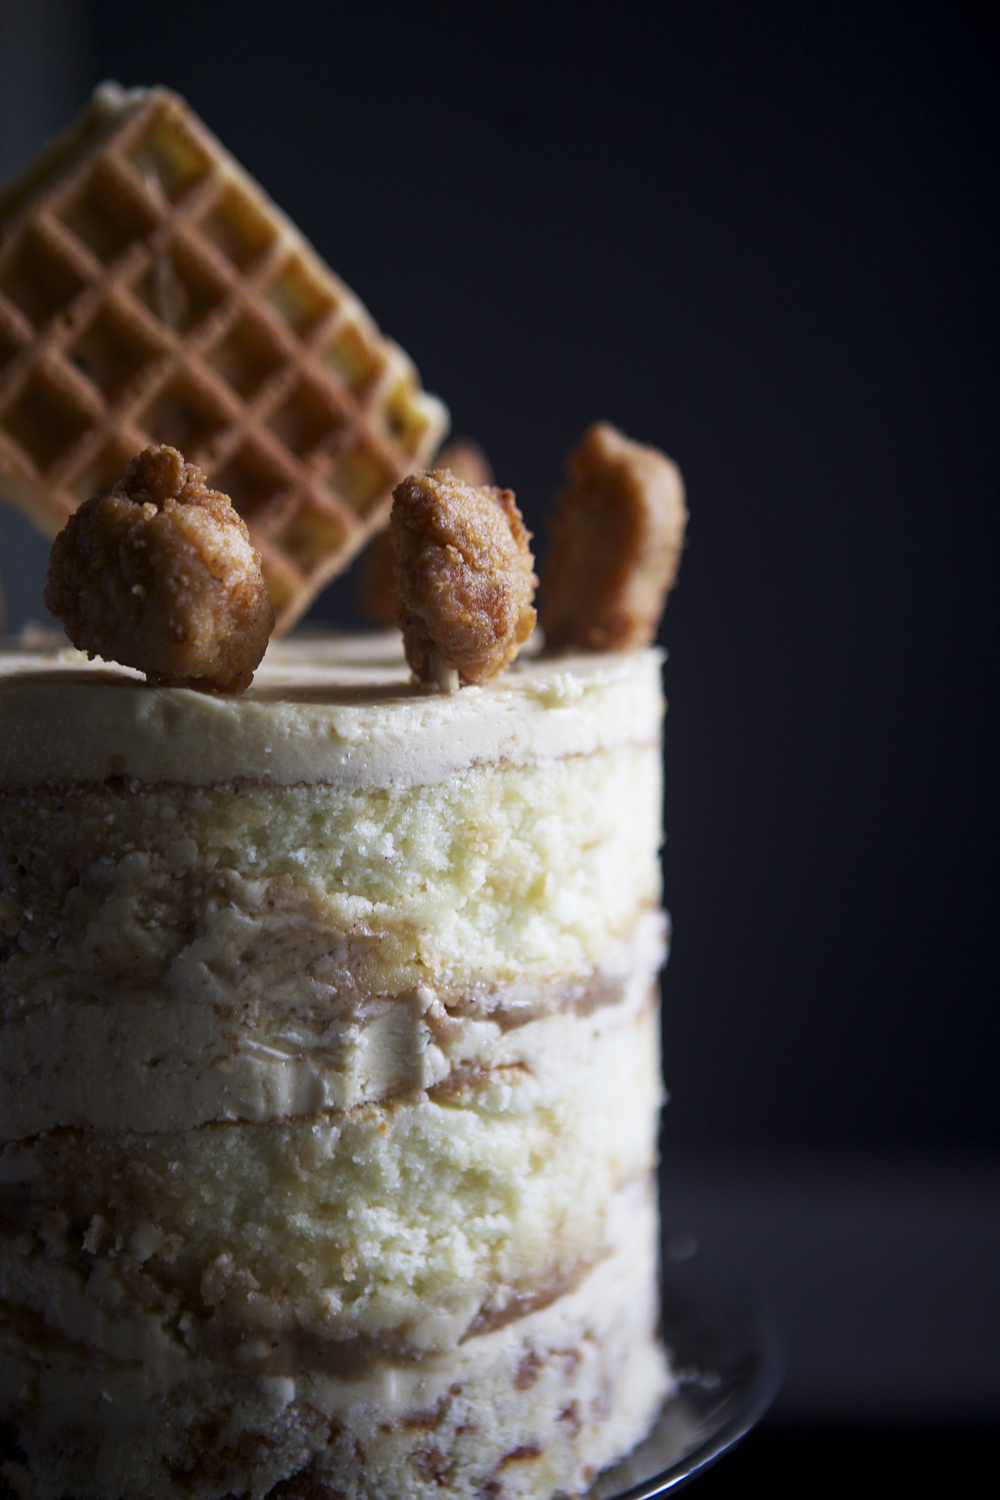 Chicken & Waffles Cake — yellow buttermilk cake, maple frosting, spicy sage caramel // Glazed & Confused